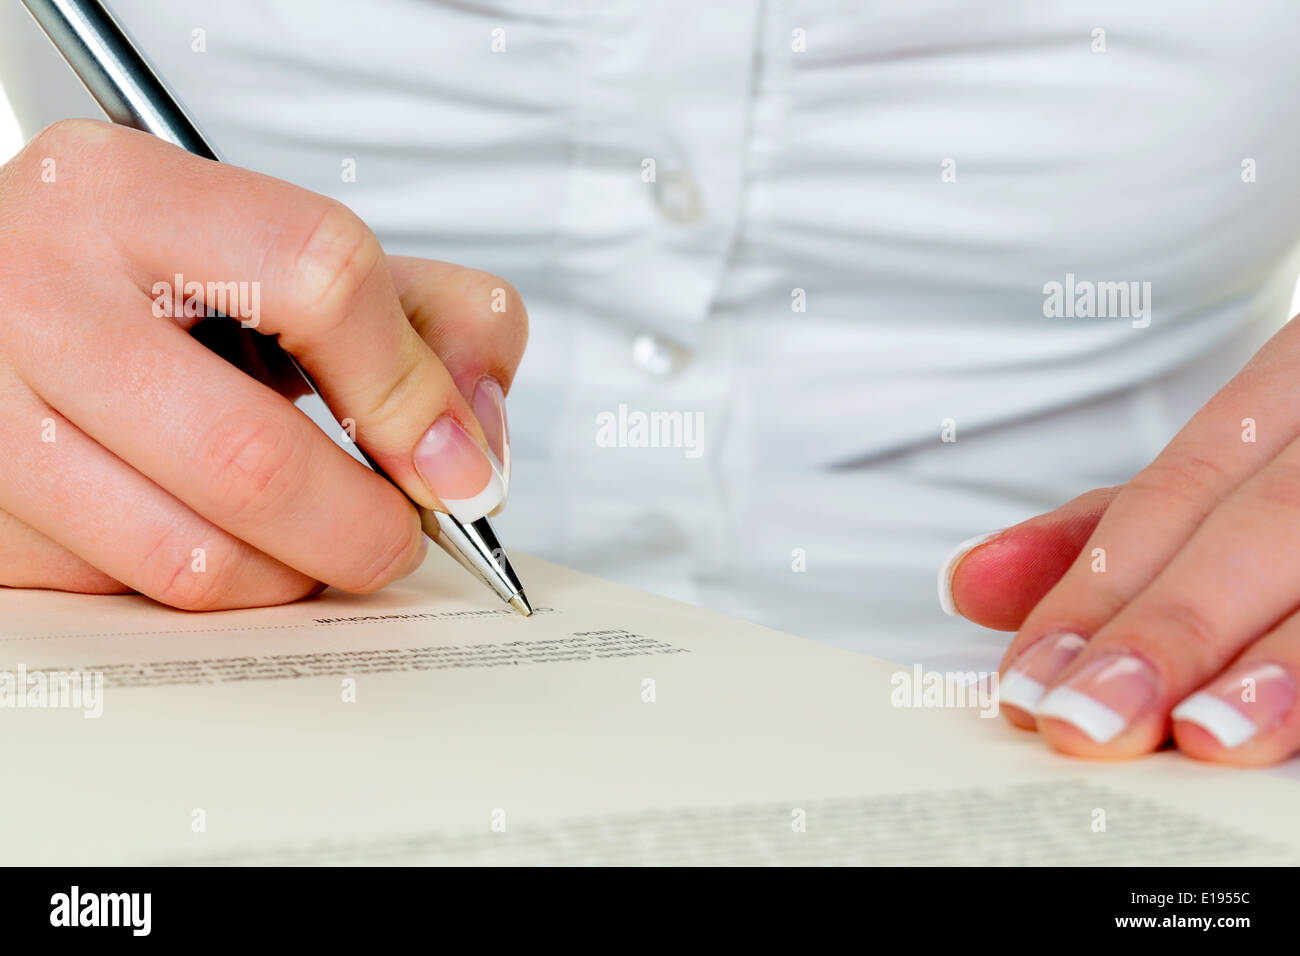 Hire And Return Stock Photos & Hire And Return Stock Images - Alamy